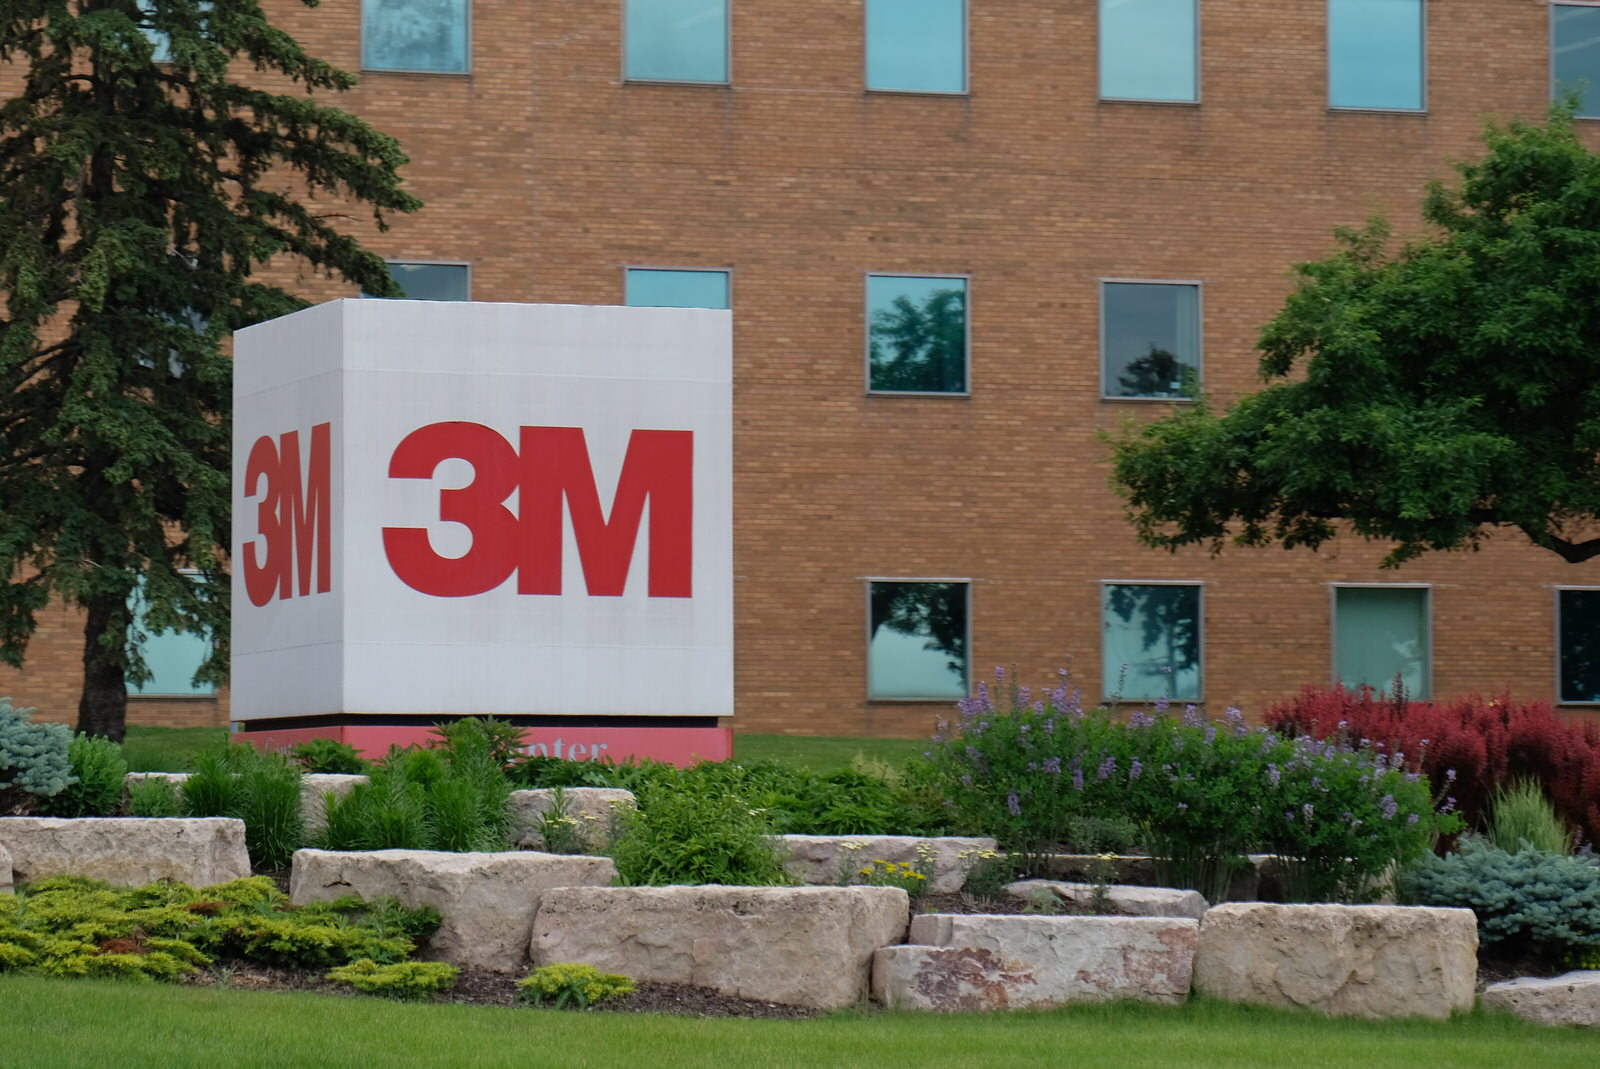 Entrance to 3M's corporate campus in St. Paul, Minnesota.